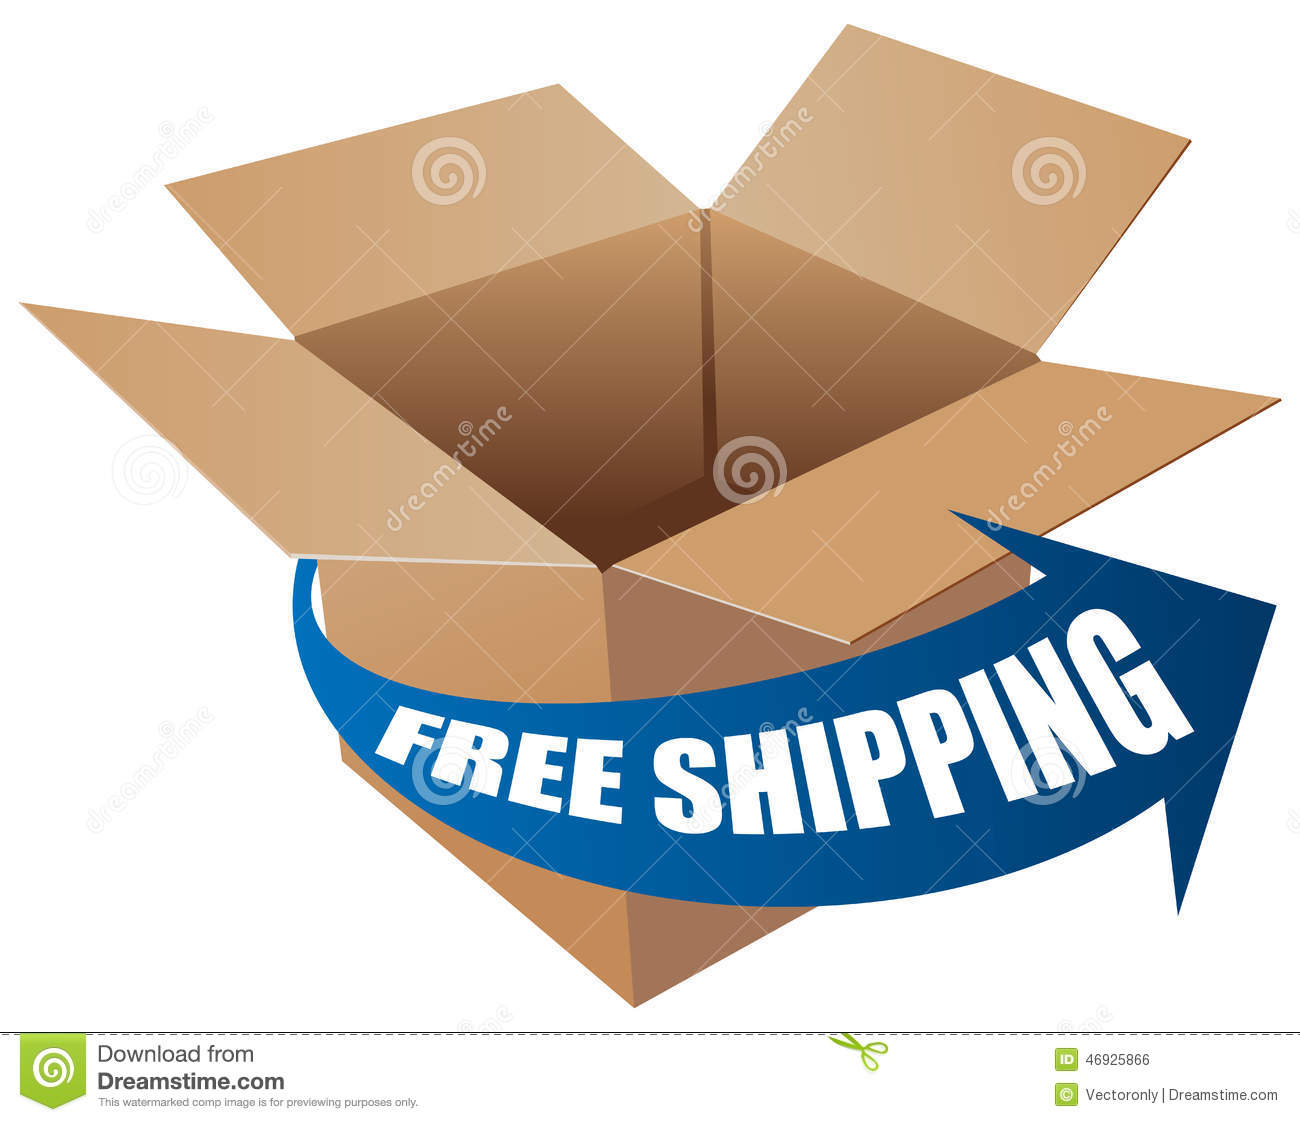 Free Shipping Stock Vector - Image: 46925866